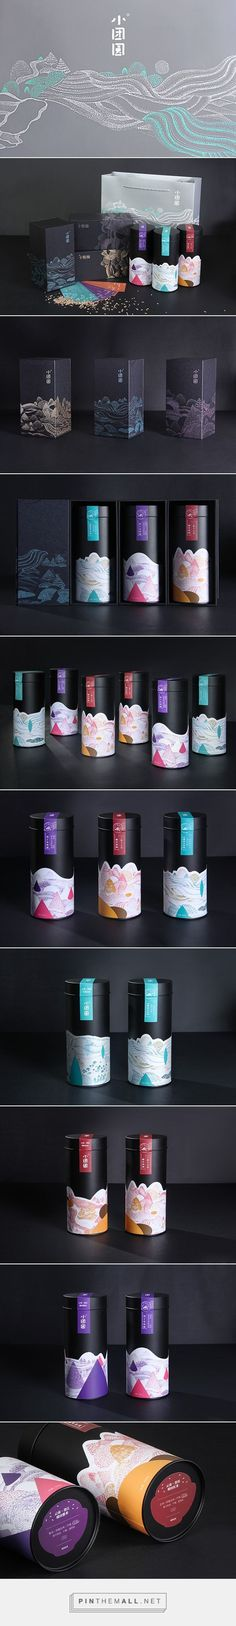 Small Reunions 小团圆 Rice Packaging Design by Yi Mi Xiaoxin.   Pin curated by #SFields99 #packaging #design